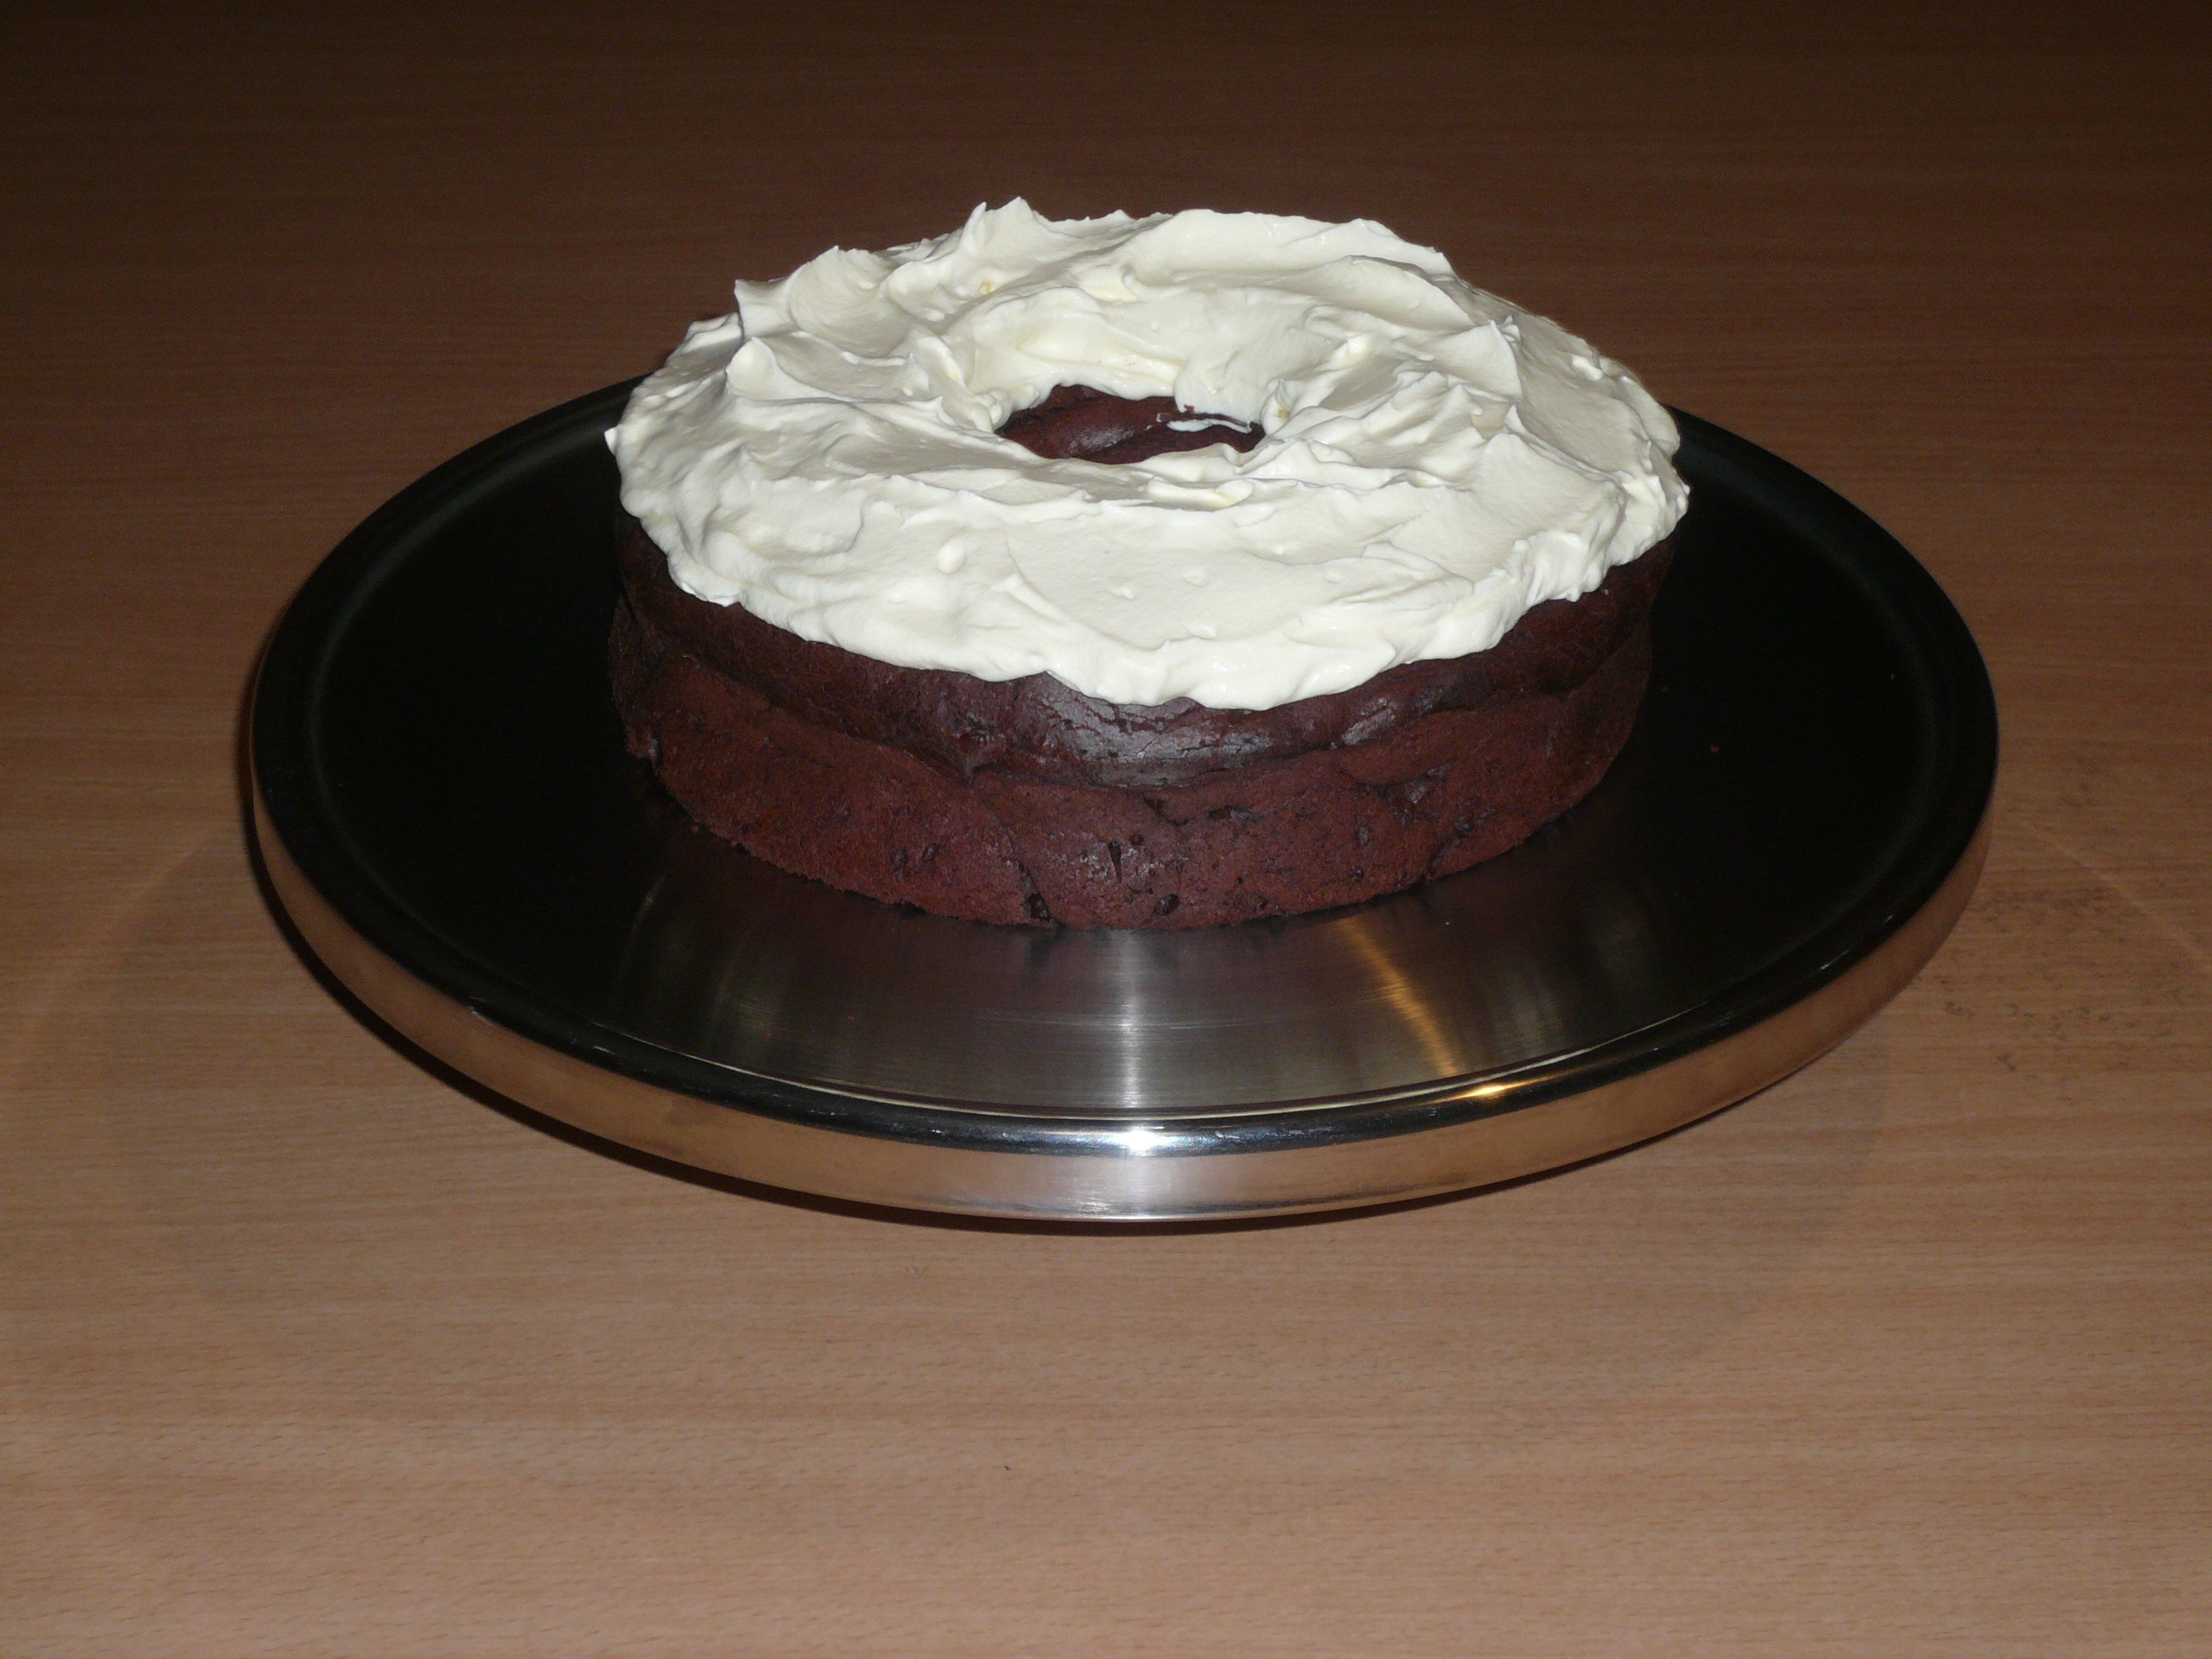 I Ve Been Fiddling About And Am So Happy With The Flavour Of This Chocolate Cake Made On Stevia